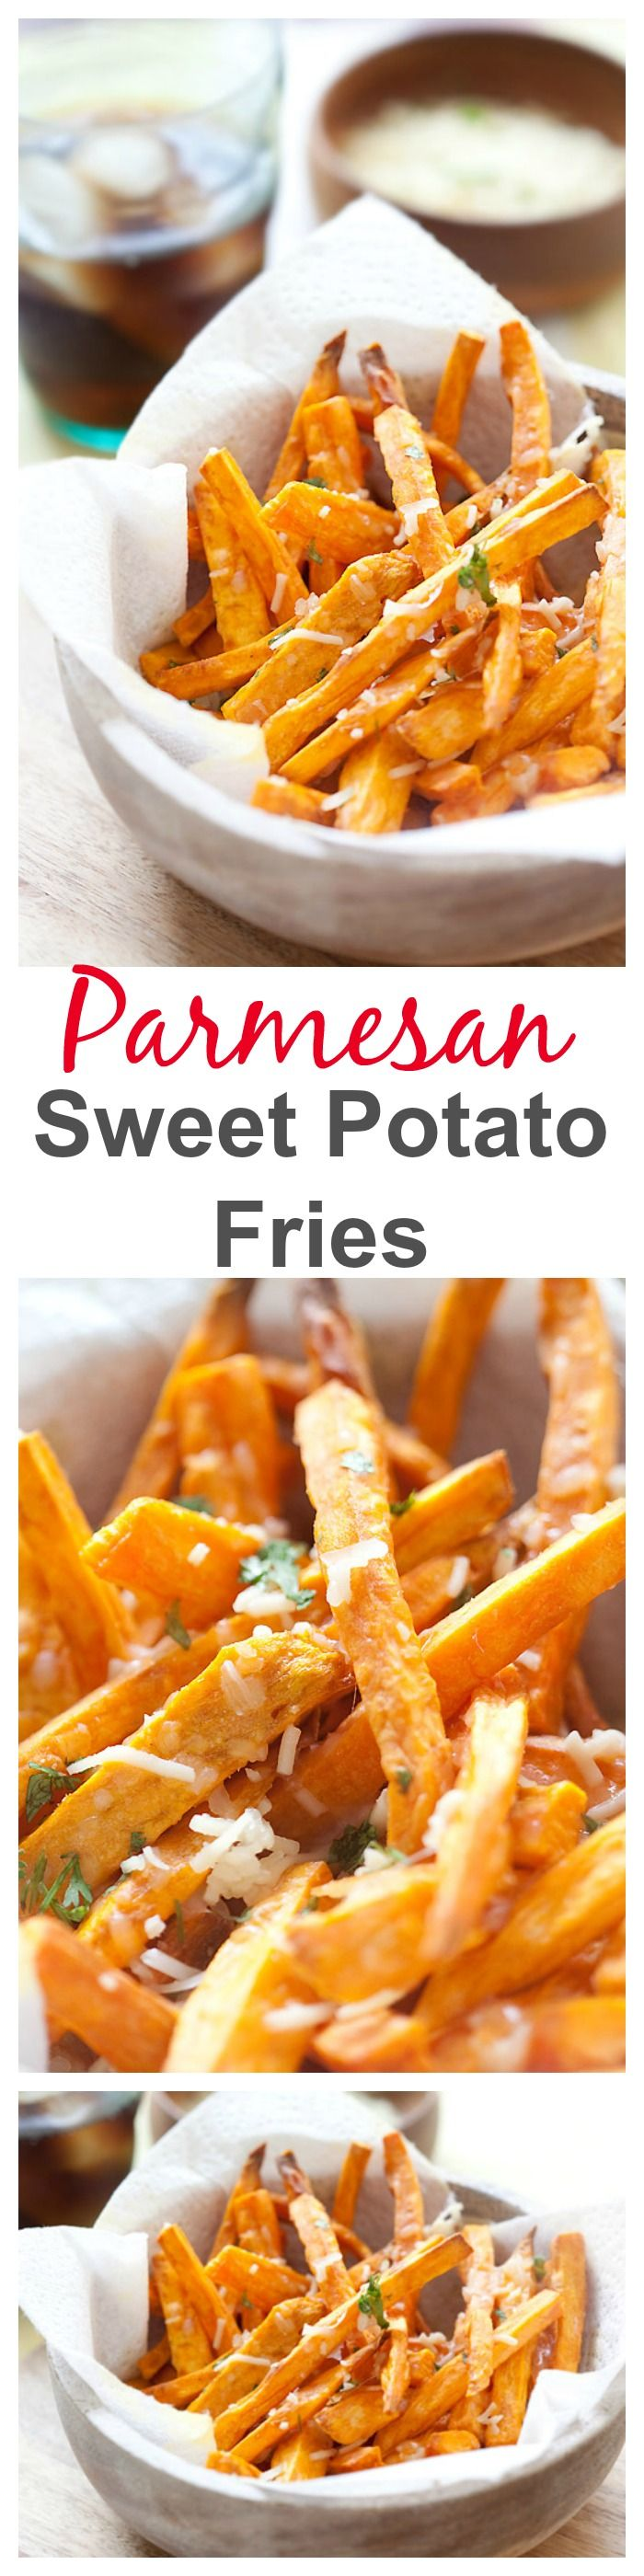 Parmesan Sweet Potato Fries - crispy and cheesy sweet potatoes and topped with Parmesan cheese, perfect side dish and so easy | rasamalaysia.com